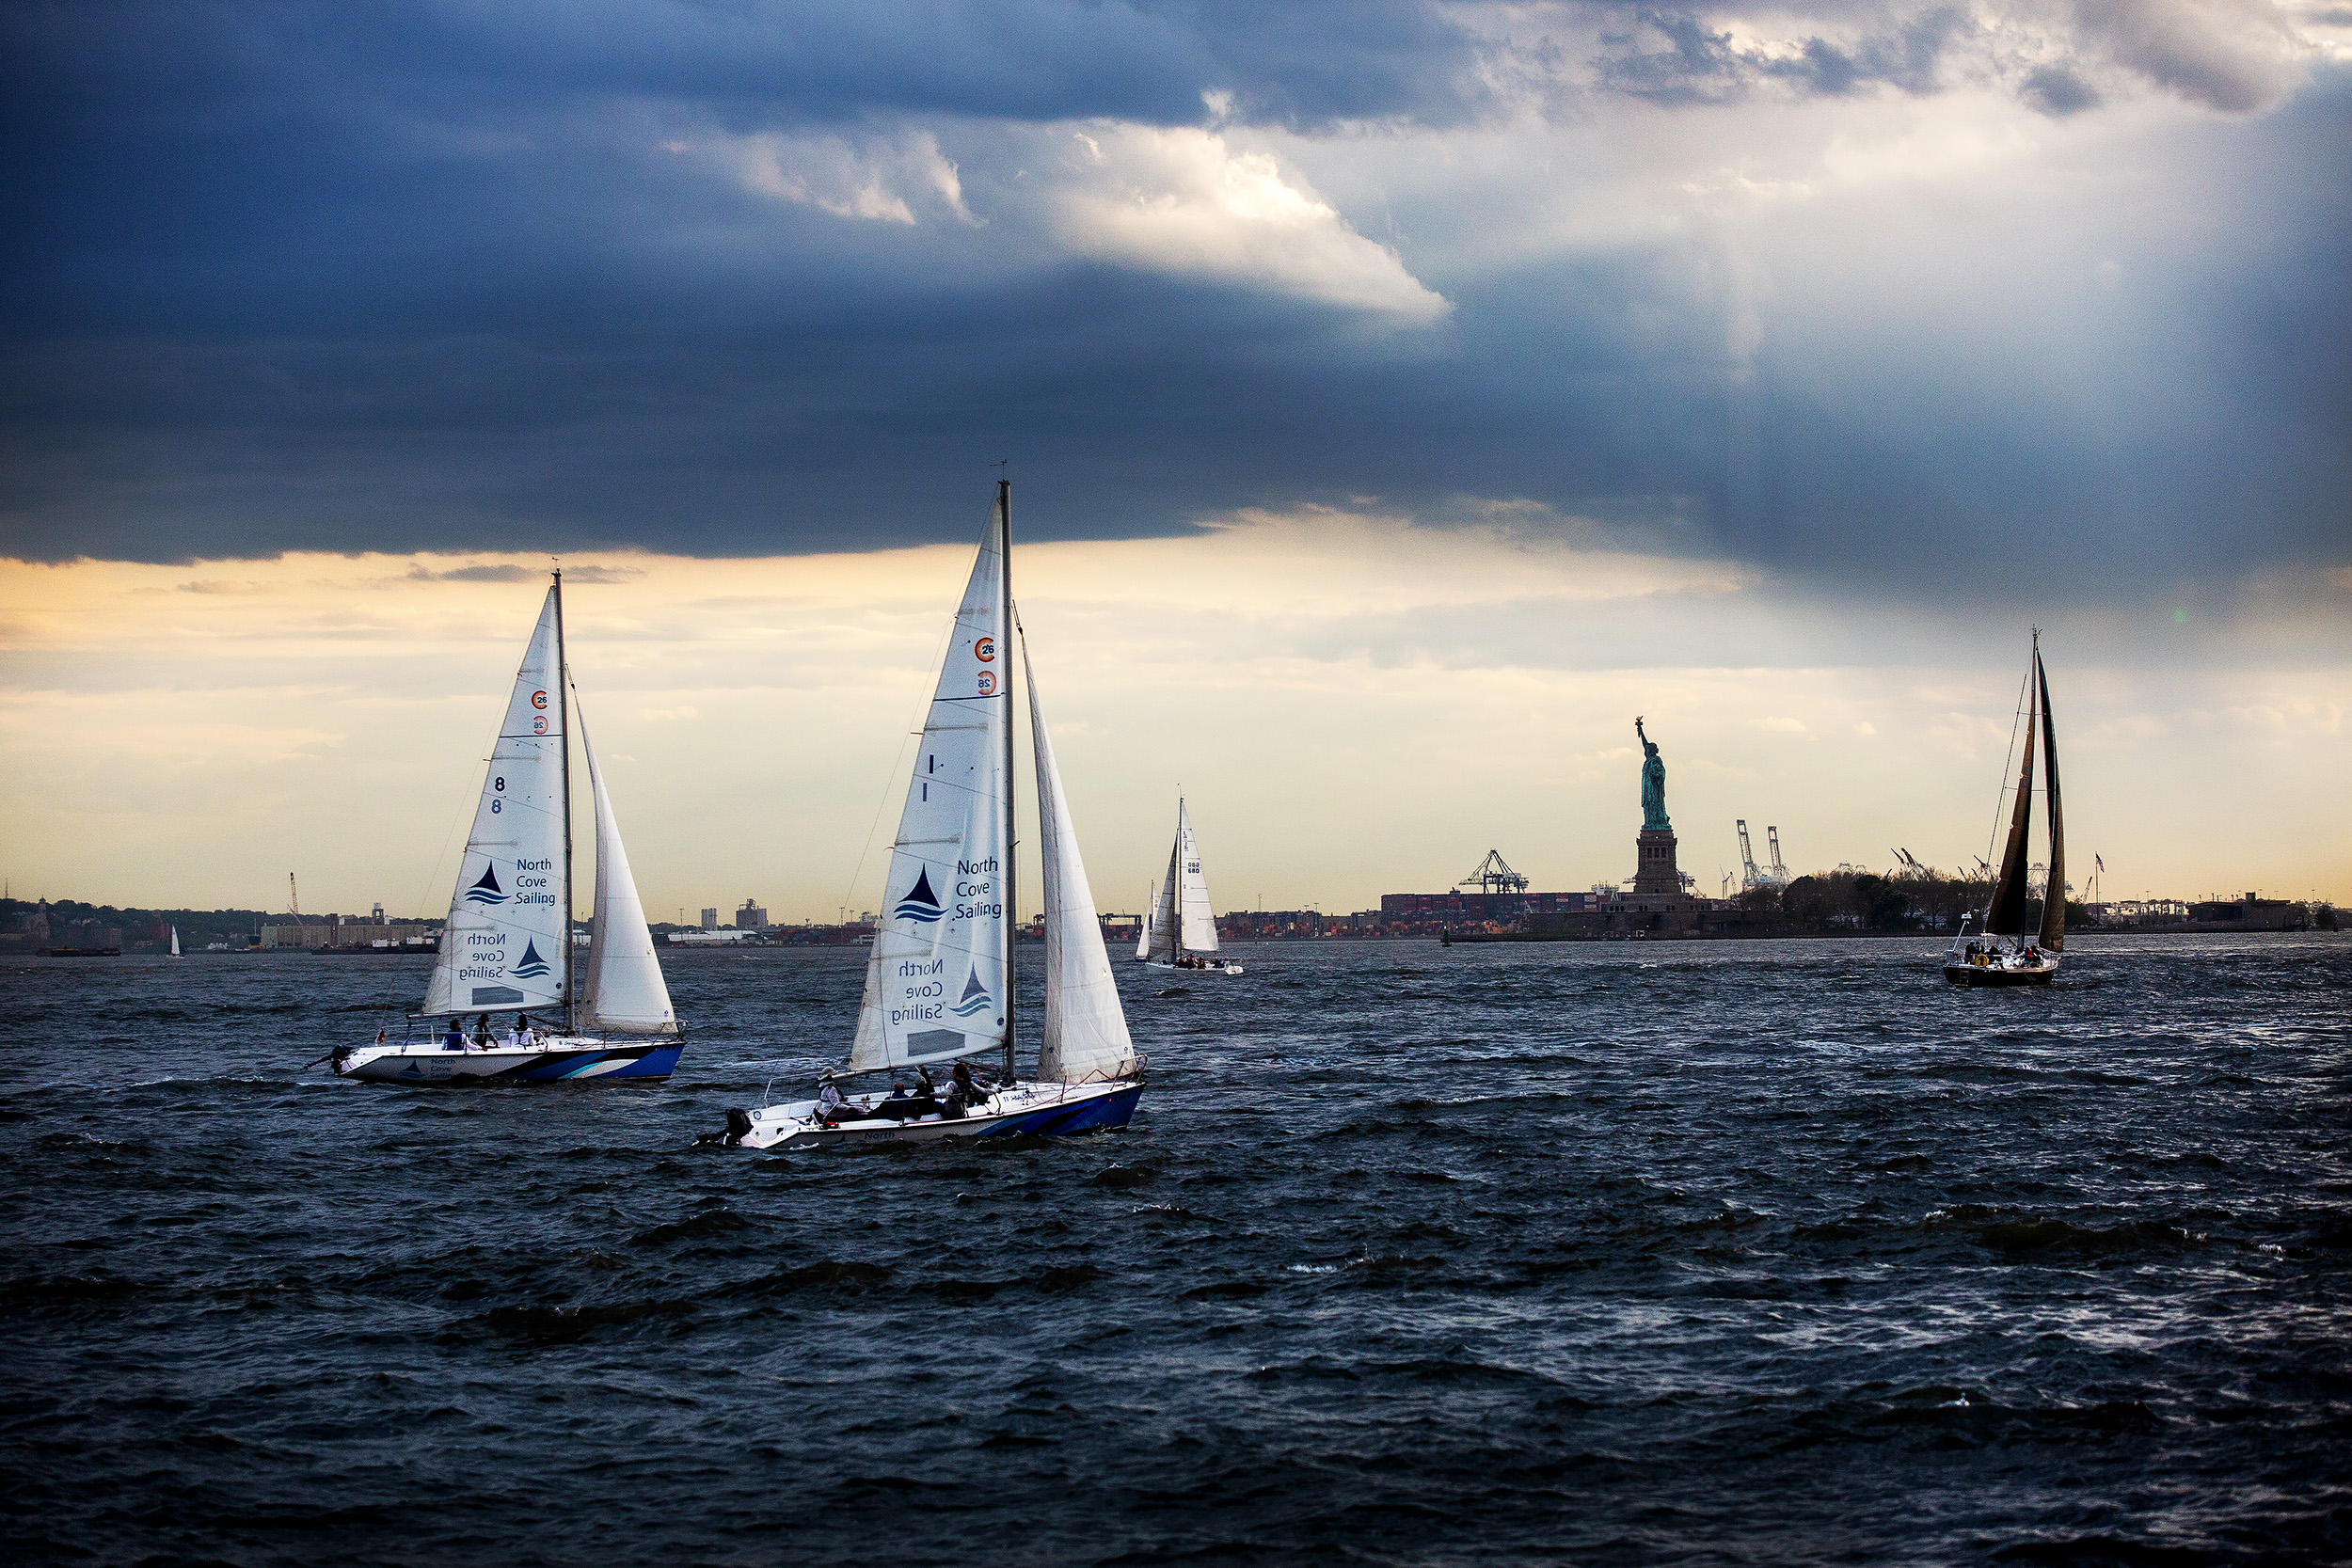 Sailors enjoy the view of the Statue of Liberty in New York, U.S..